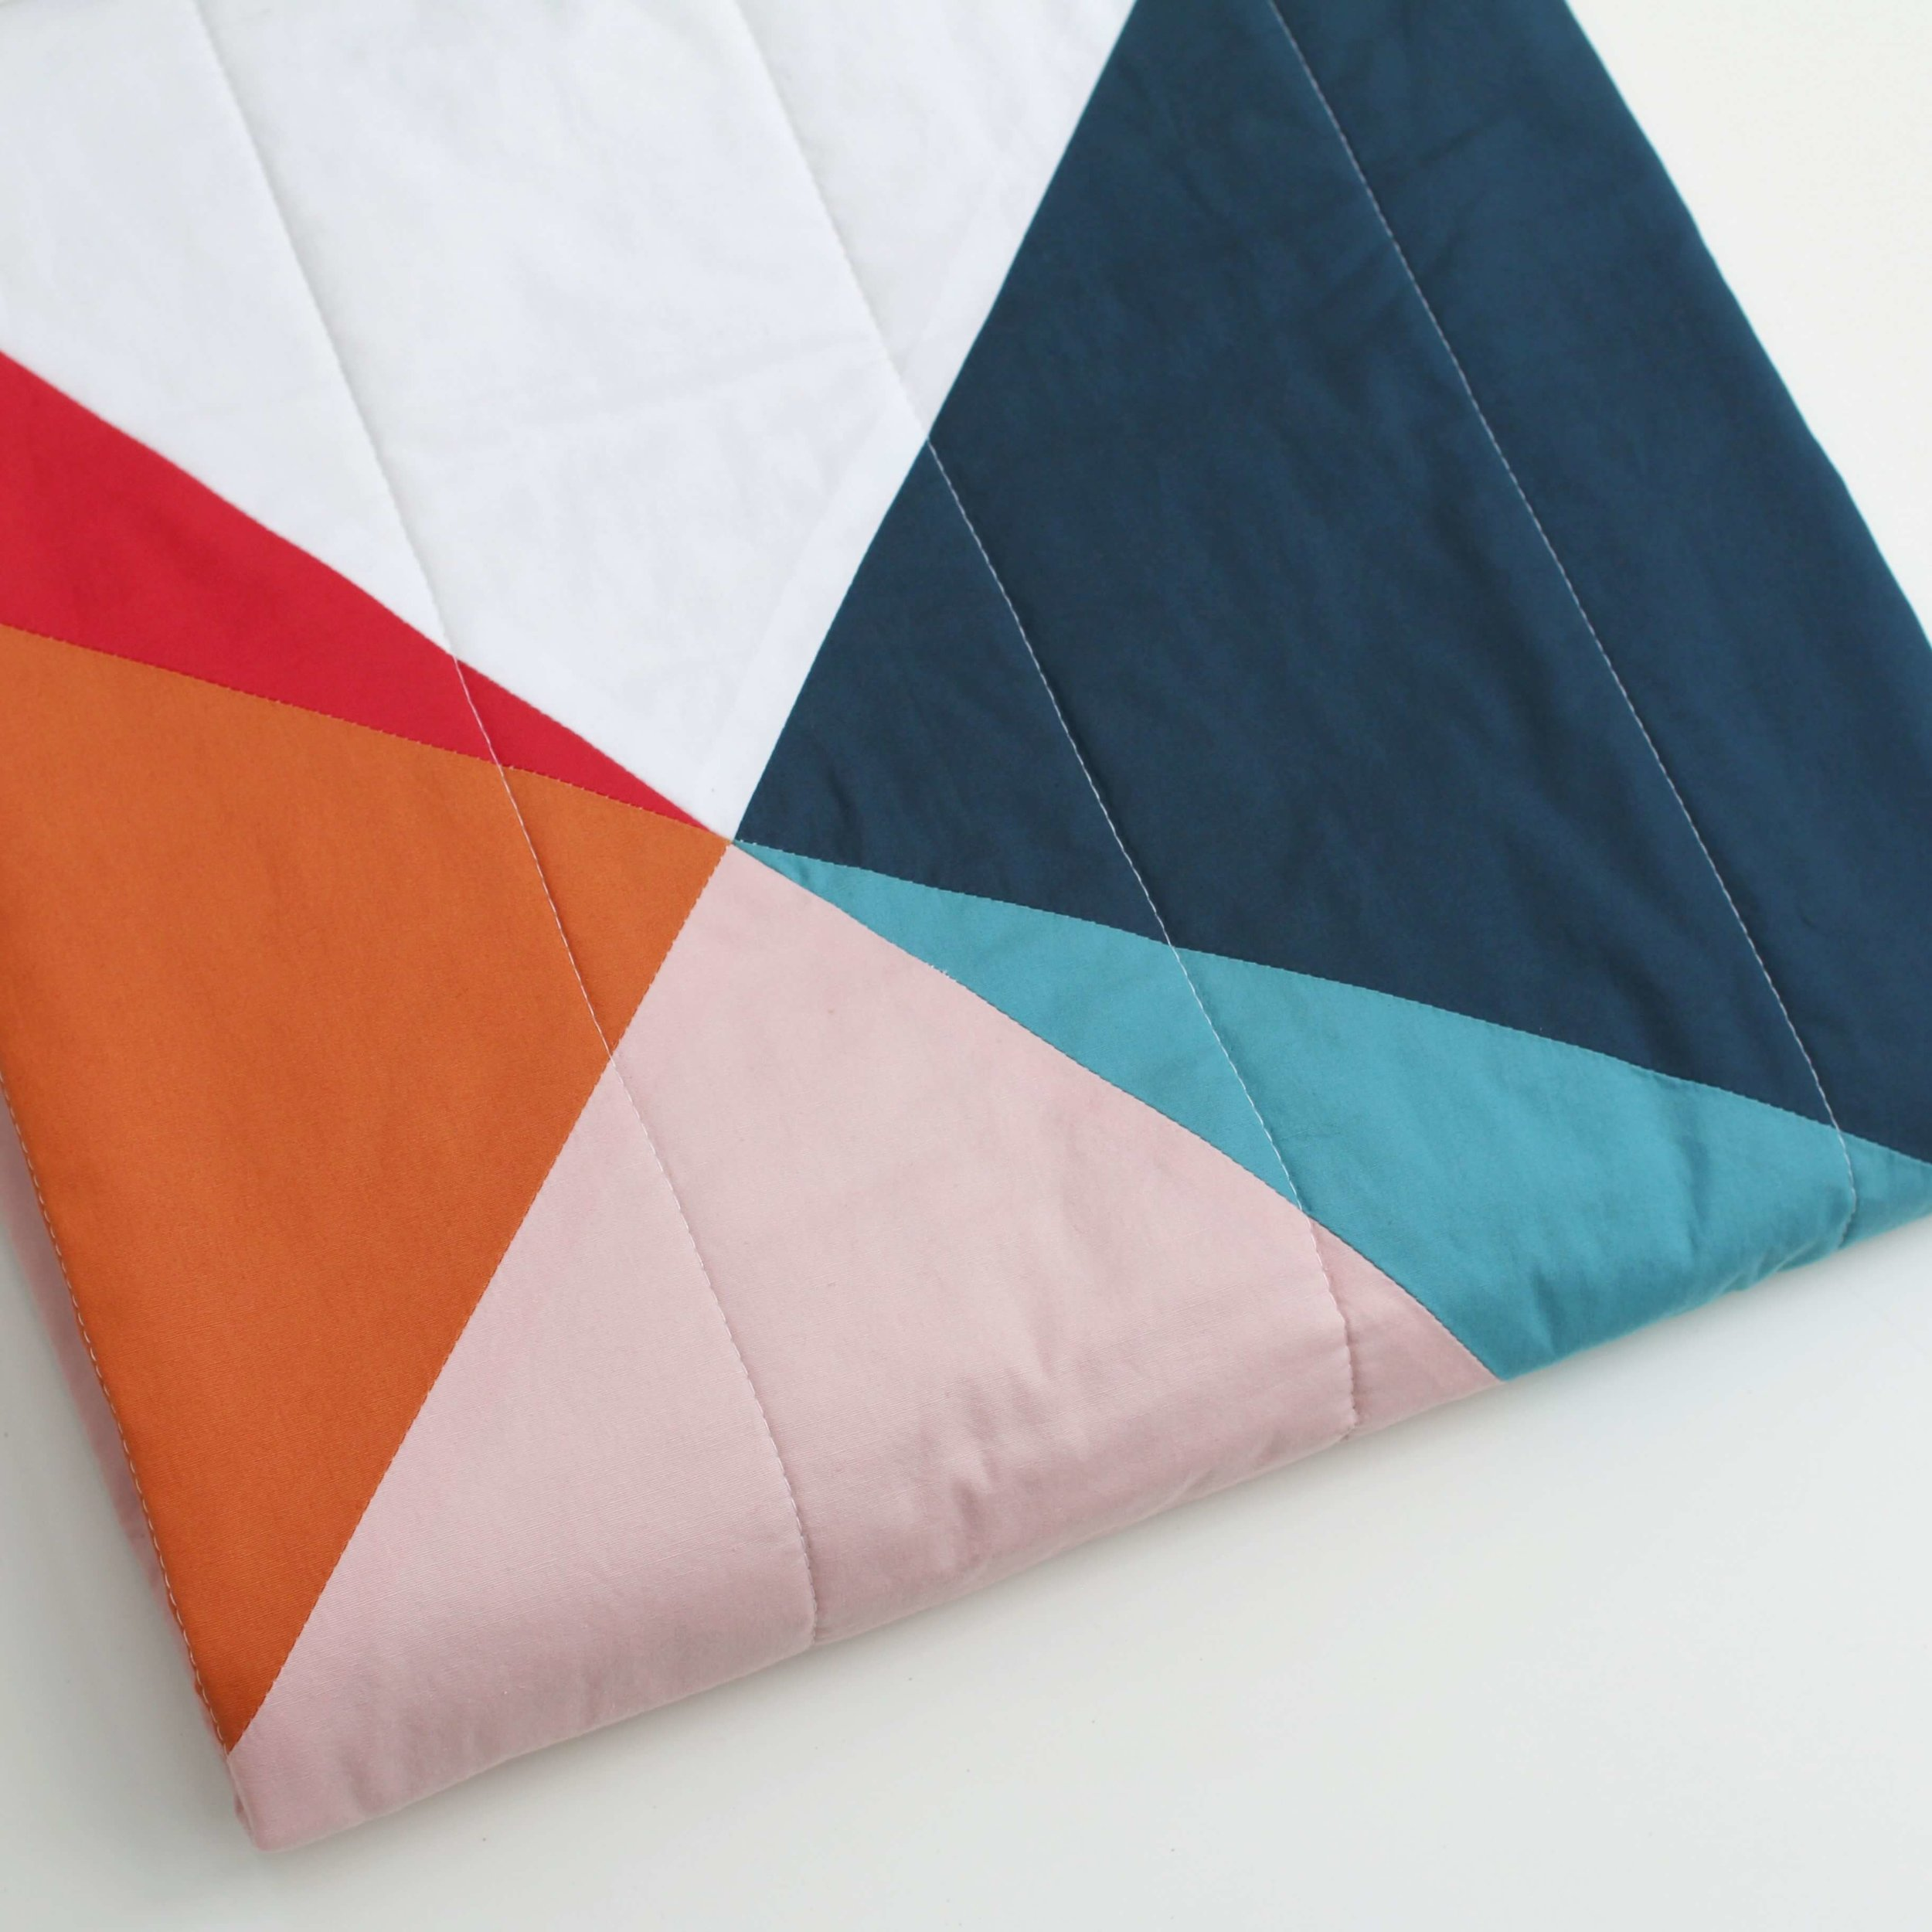 Kindred-Quilting-Co-Quilt.jpeg